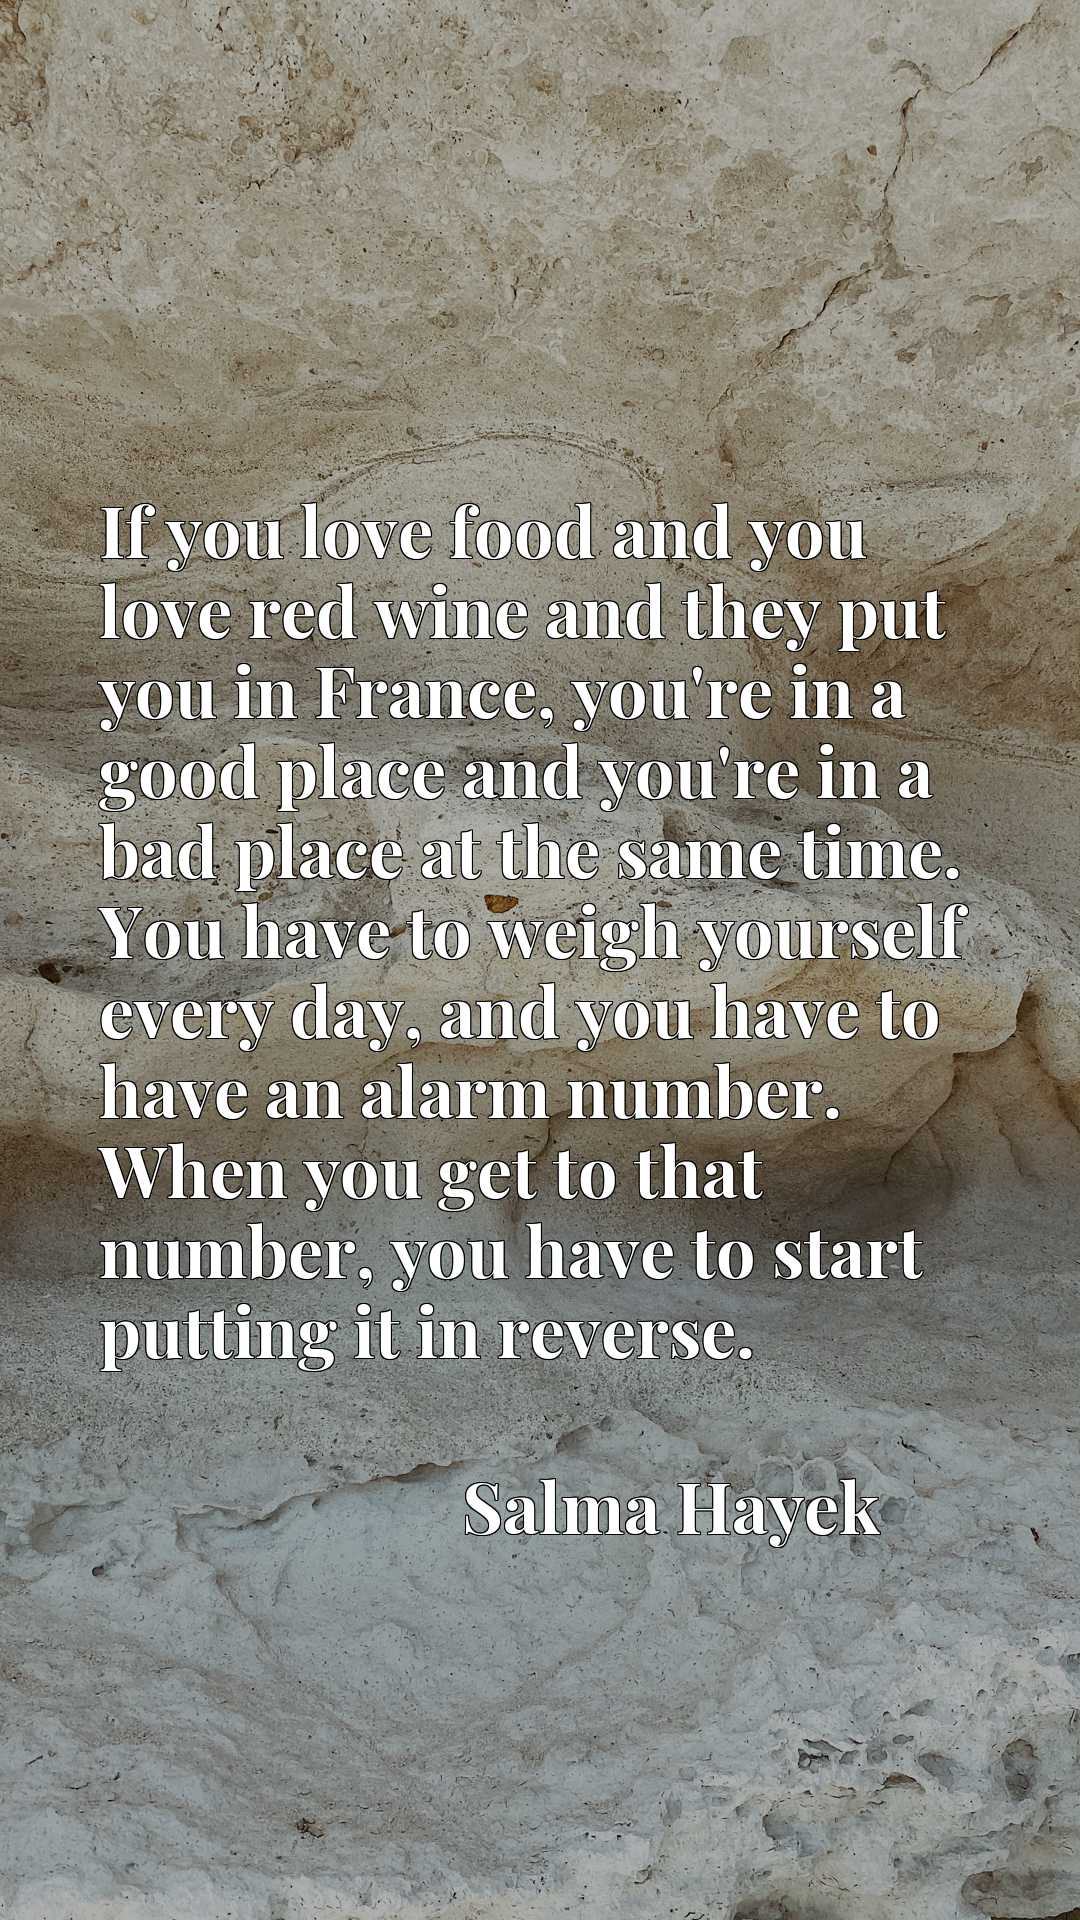 If you love food and you love red wine and they put you in France, you're in a good place and you're in a bad place at the same time. You have to weigh yourself every day, and you have to have an alarm number. When you get to that number, you have to start putting it in reverse.